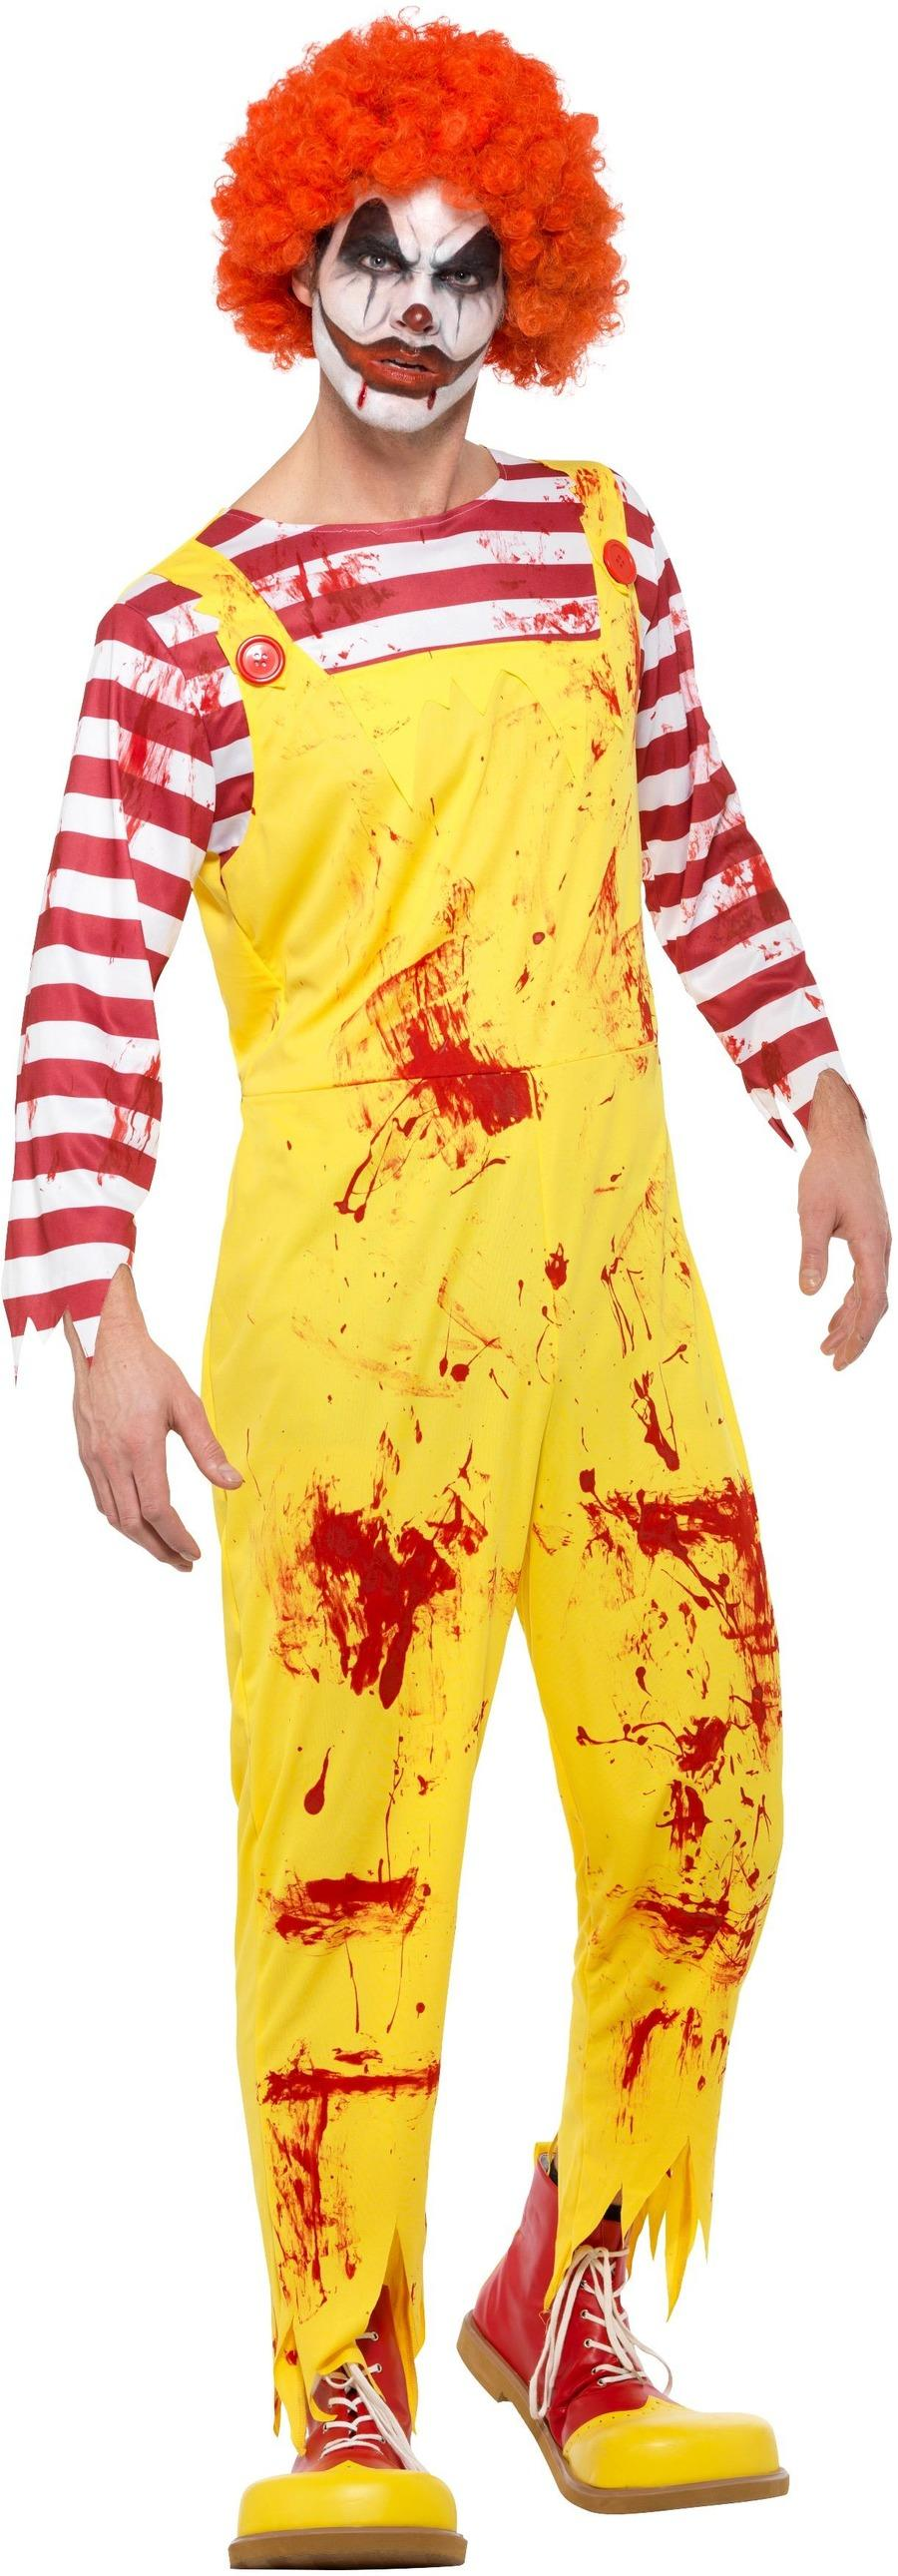 Kreepy Killer Clown Costume